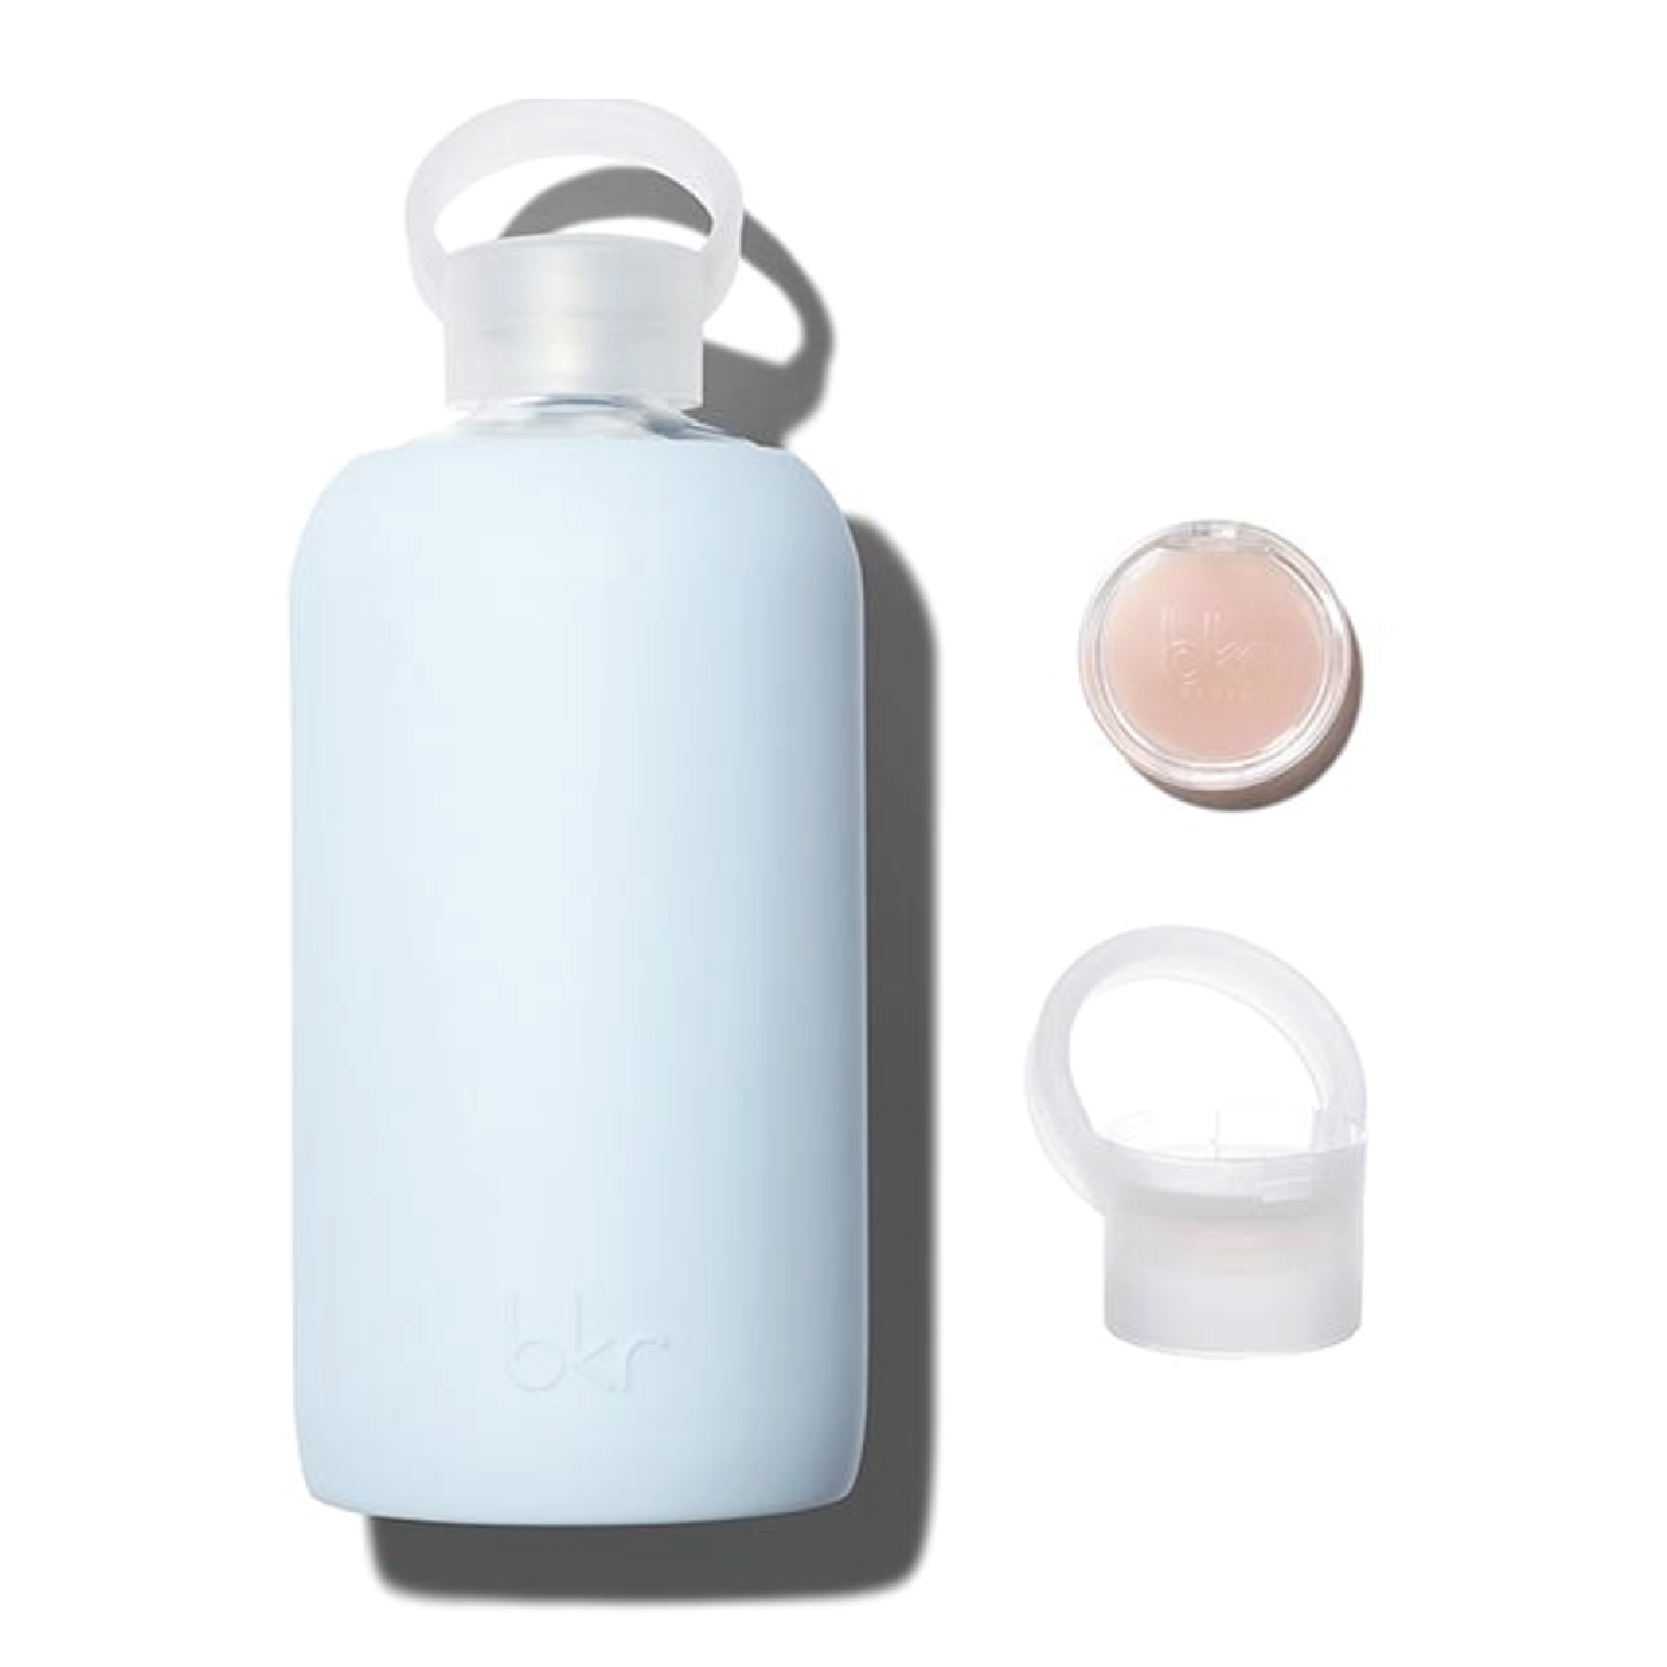 bkr Big Grace Kiss Kit - On sale for $59 on bkrBkr makes some of the chicest water bottles, that are super durable because of the glass coated in rubber. They recently launched a lip balm cap set that will keep both your body and your lips hydrated!